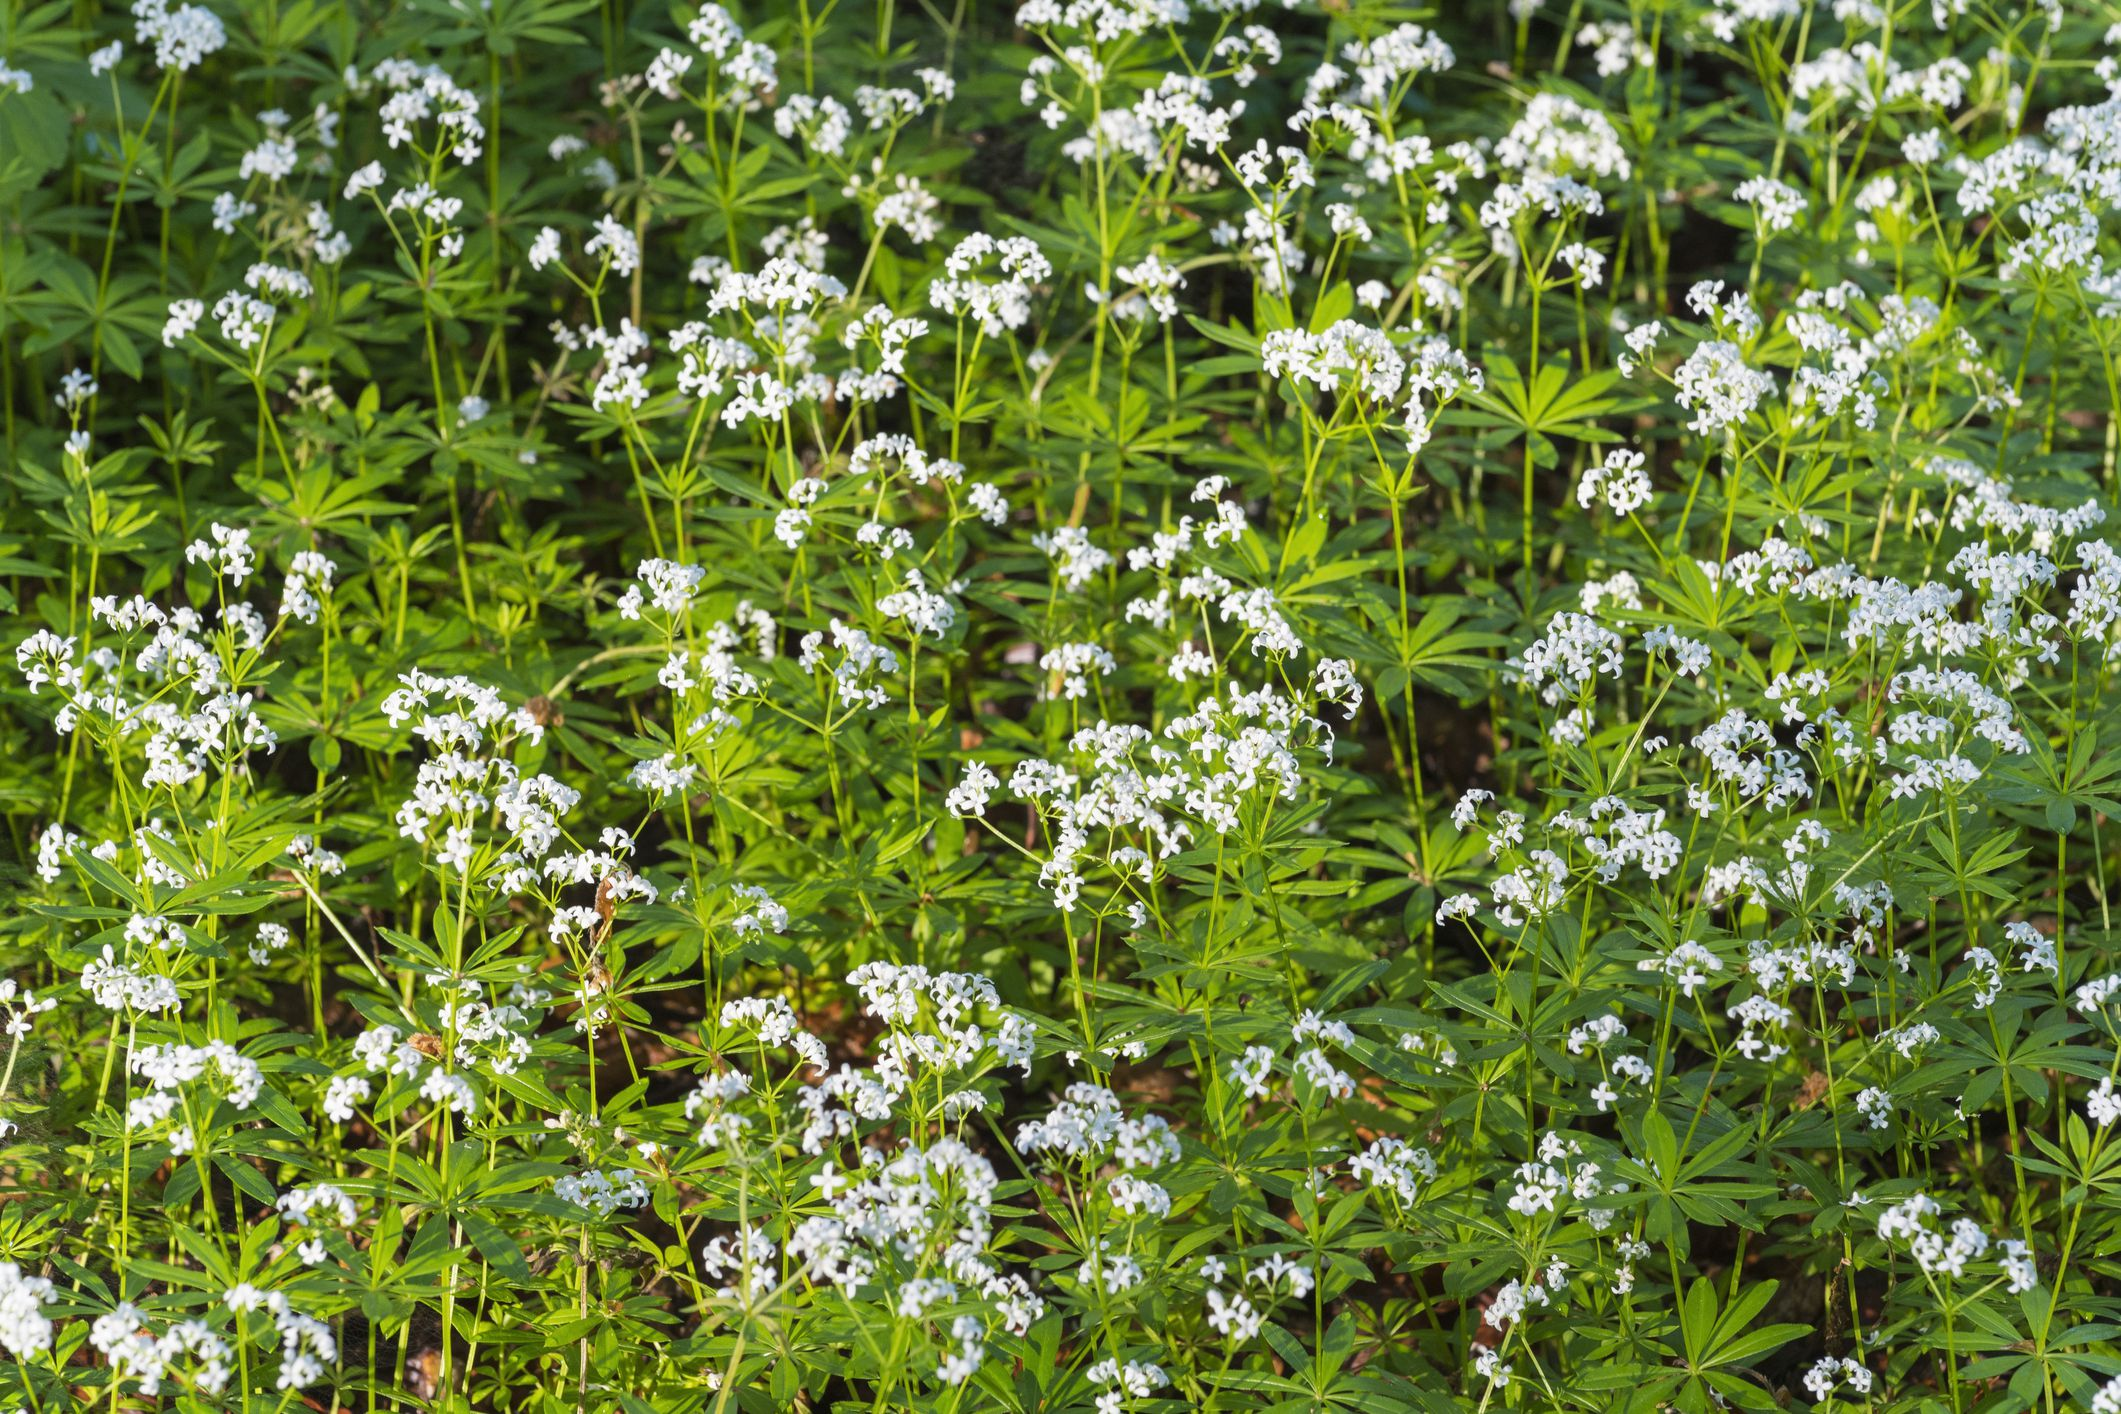 Sweet woodruff plants in bloom.